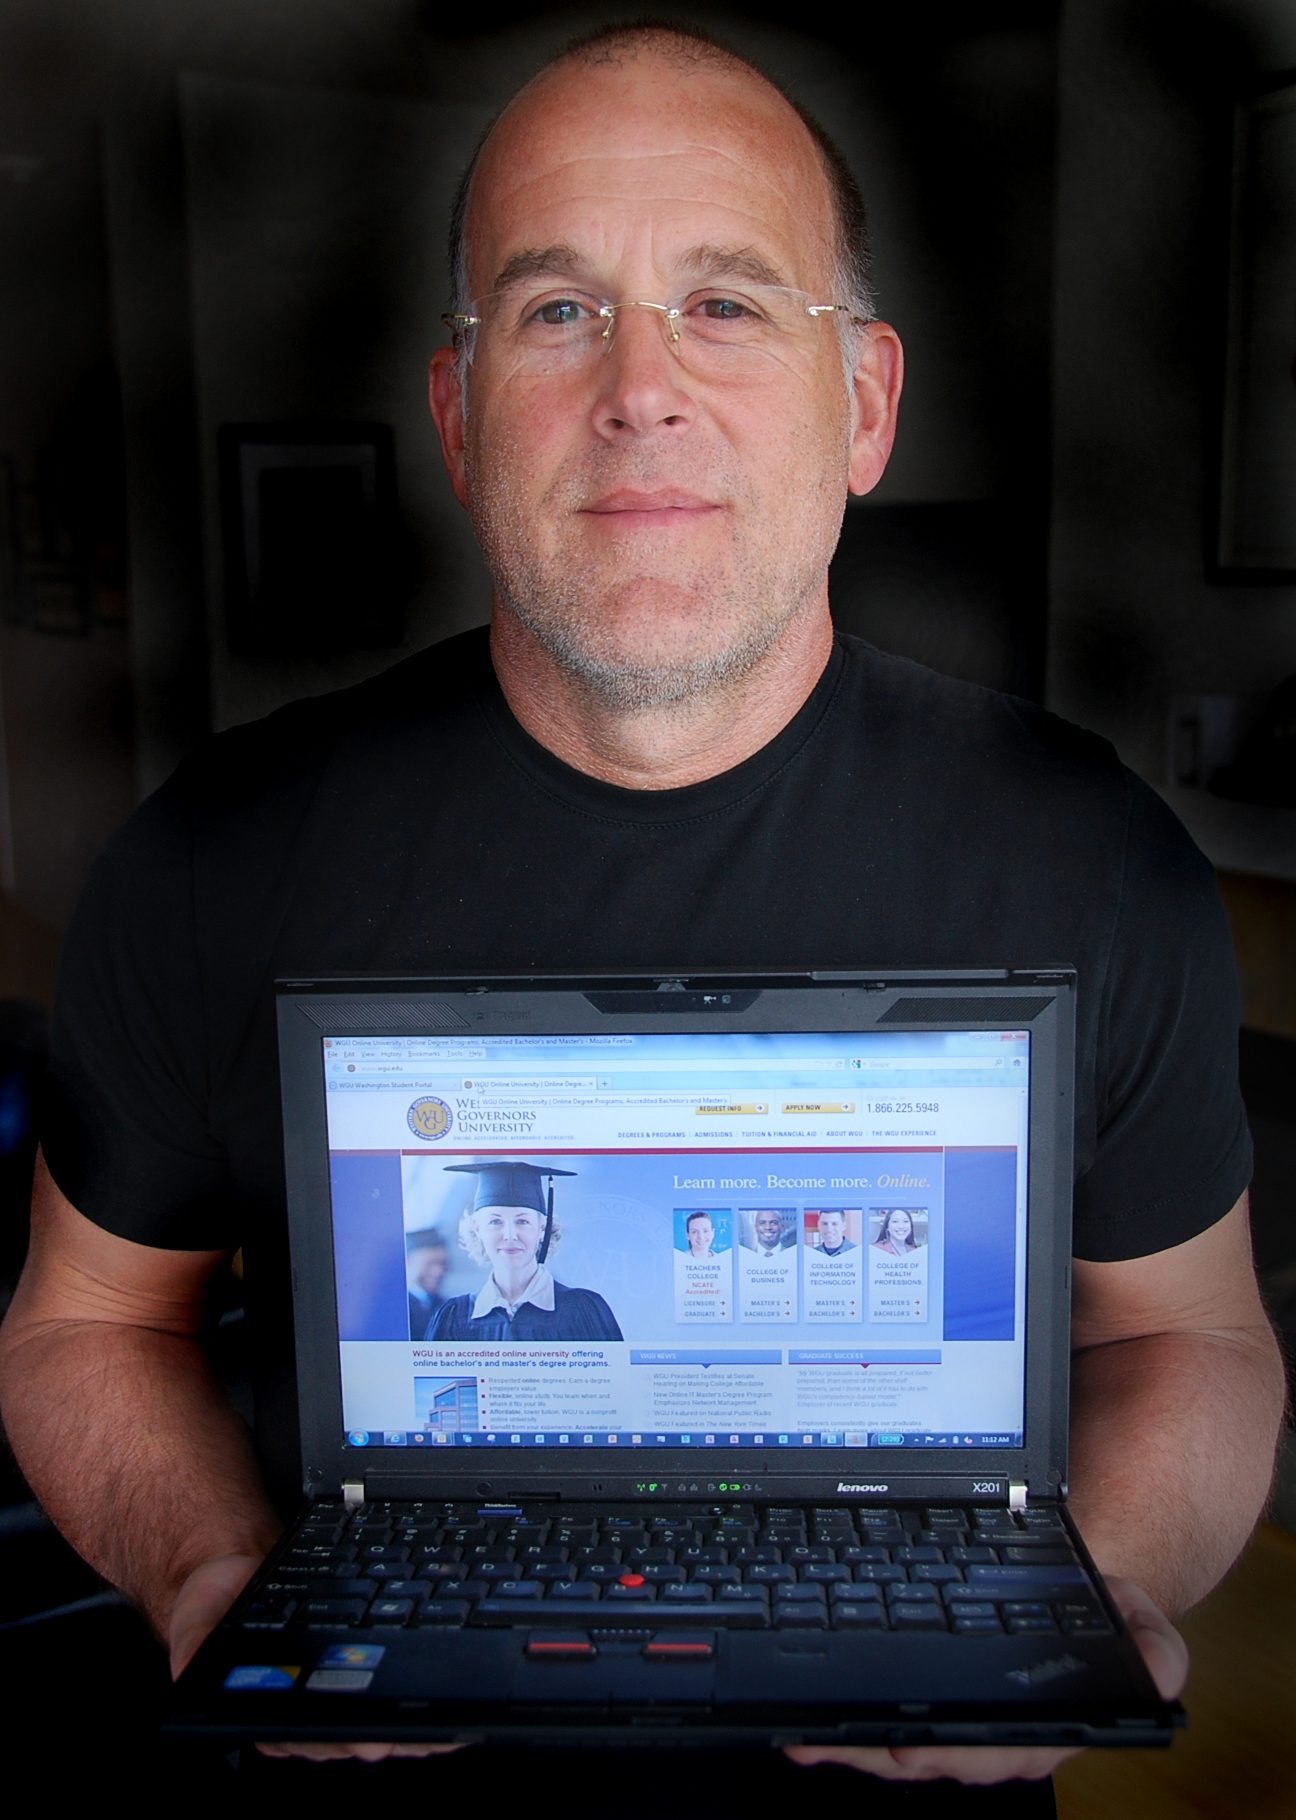 Caption: Gary Hotsfall, a student at Western Governor's University Washington. WGU is a network of nonprofit online universities., Credit: Stephen Smith